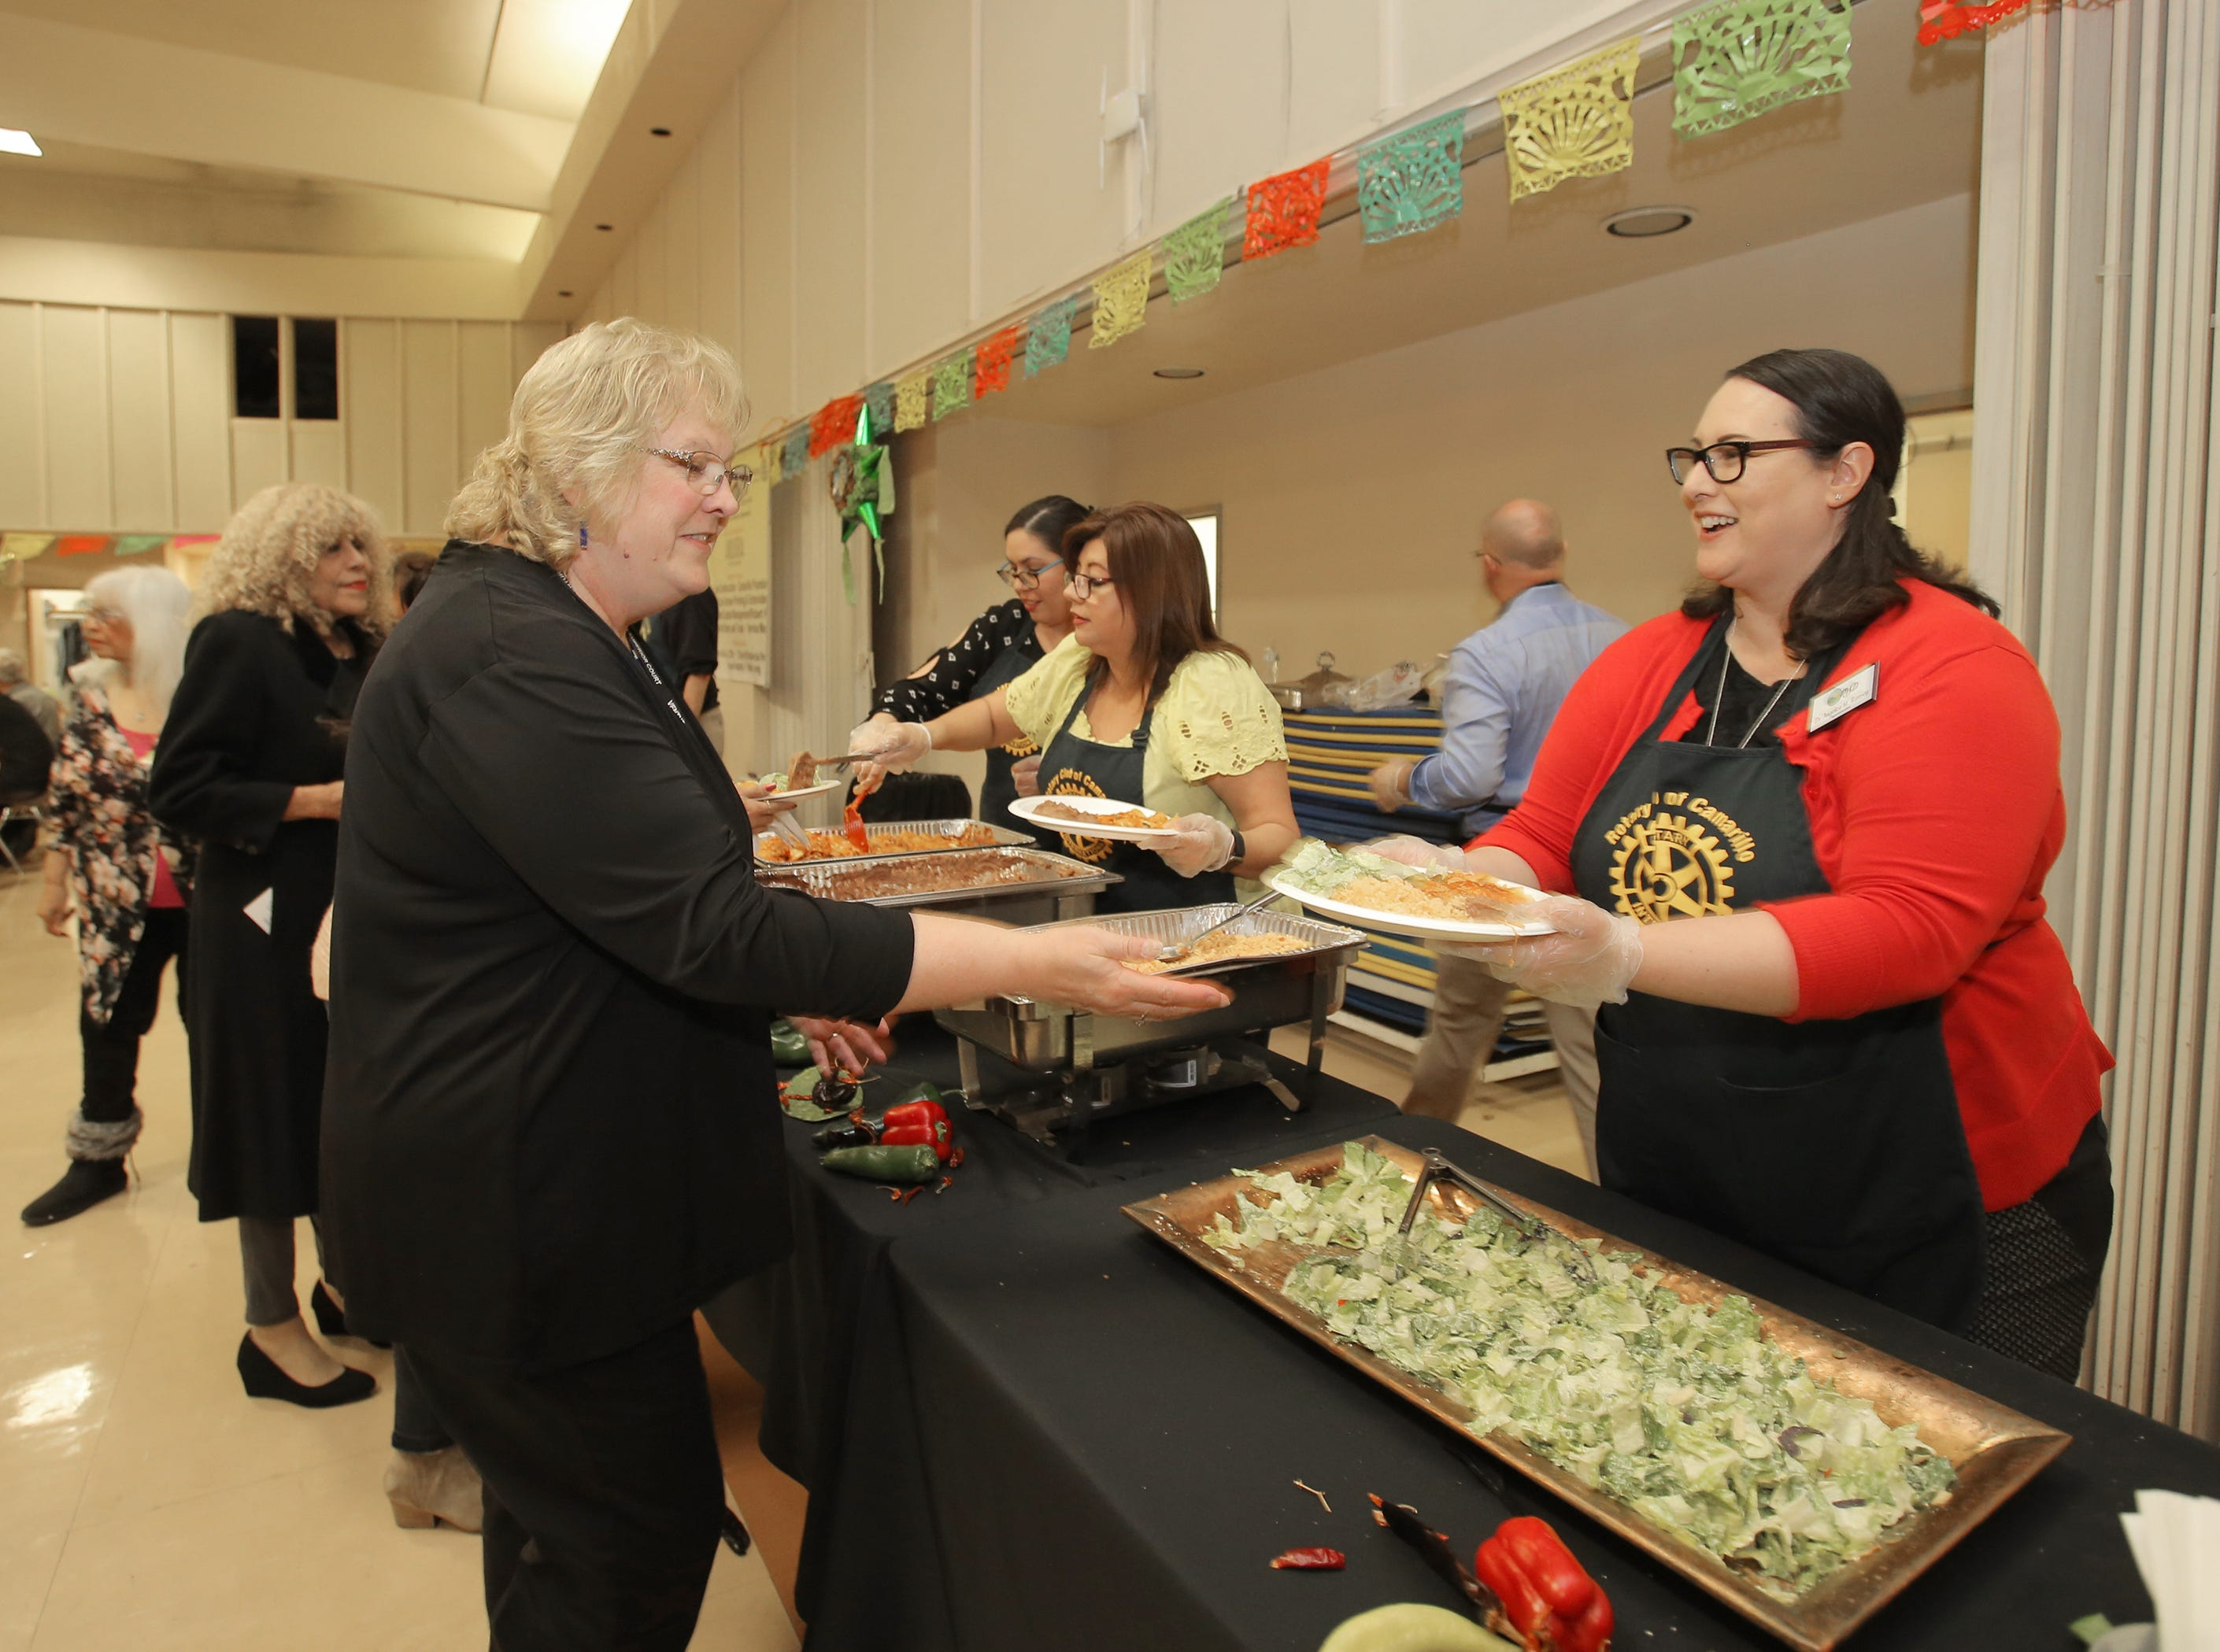 Angelica Ramsey, right, a member of the  Rotary Club of Camarillo, serves Kathleen Tillquist an enchiladas dinner during the annual Viva la Comida Dinner and Fiesta fundraiser on Monday at the Camarillo Community Center. Ramsey is the superintendent of the Pleasant Valley School District.